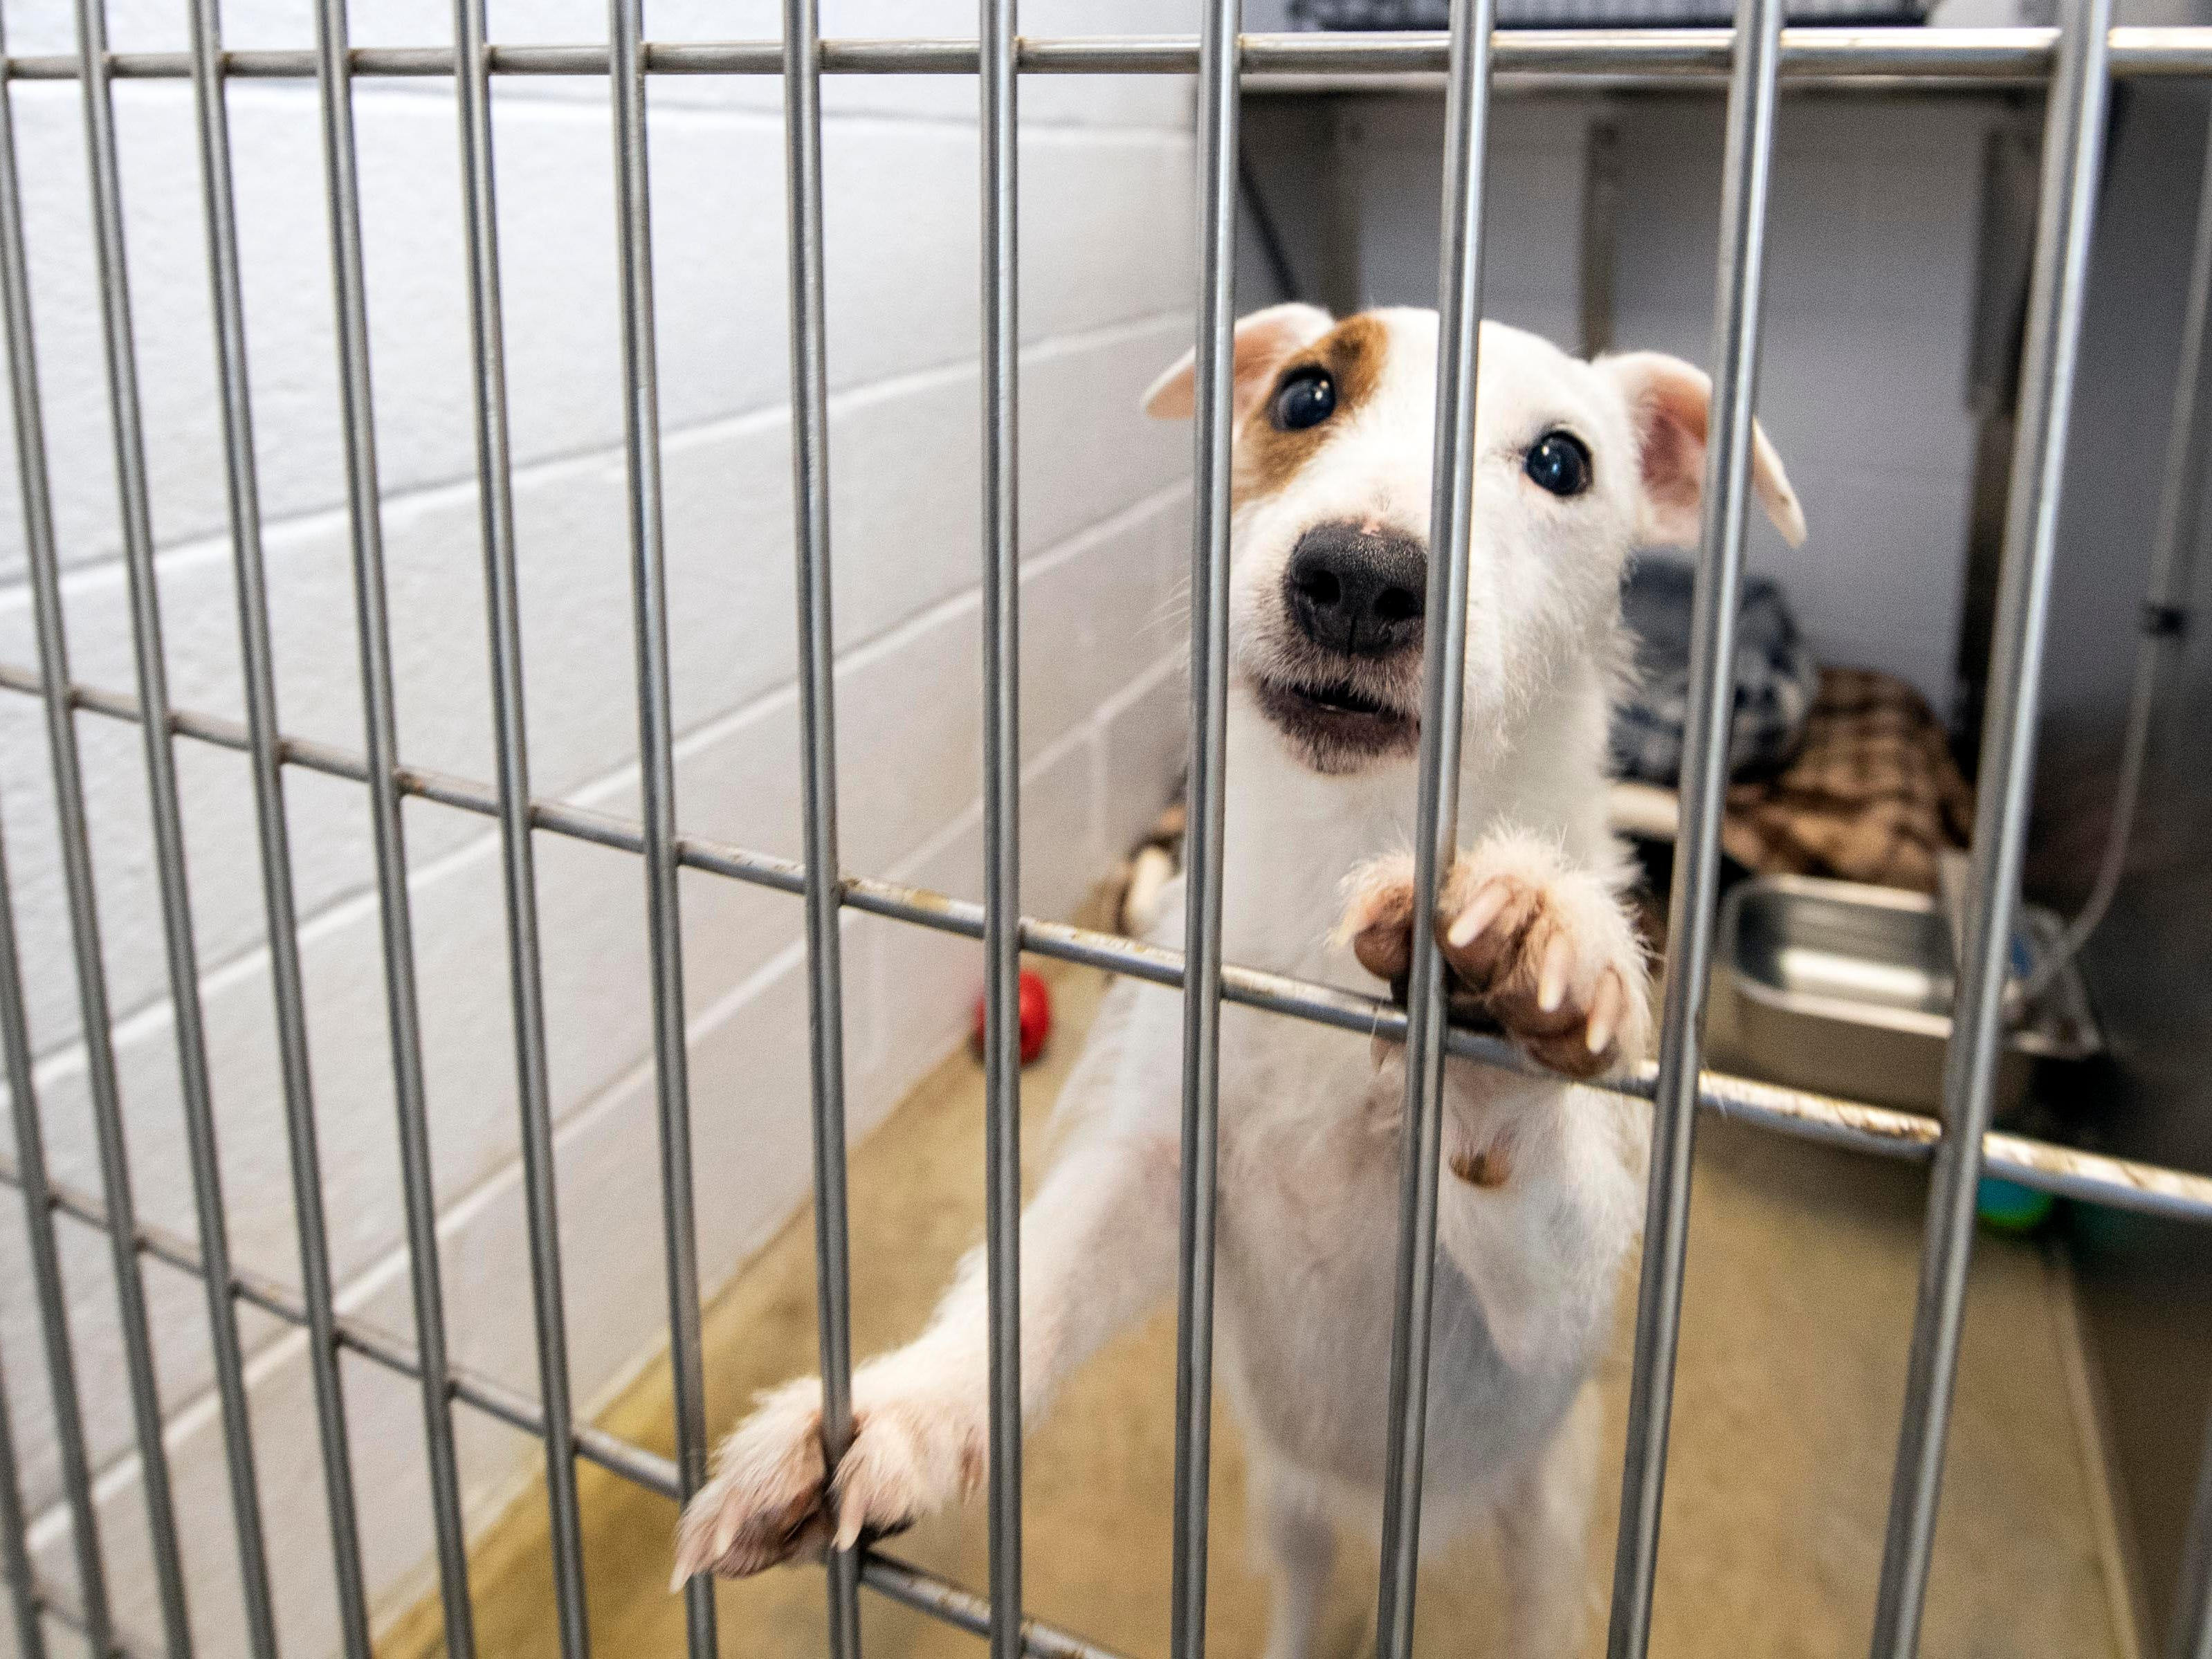 Jack, a 4-year old Jack Russel terrier, was brought into the shelter because his owner no longer had time for him.